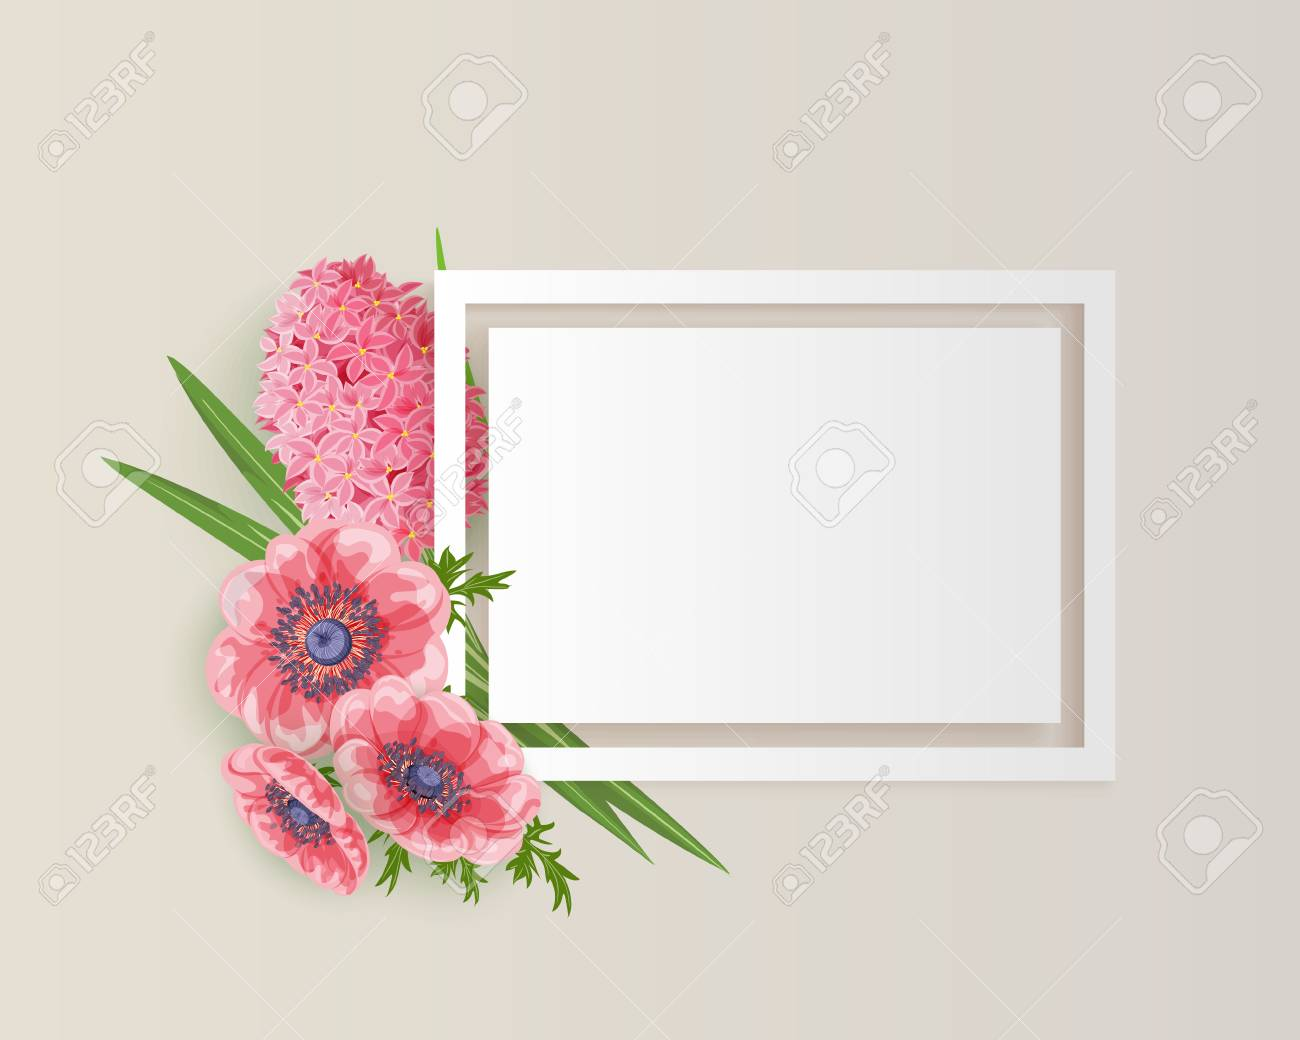 frame with pink rad flowers for congratulations invitations